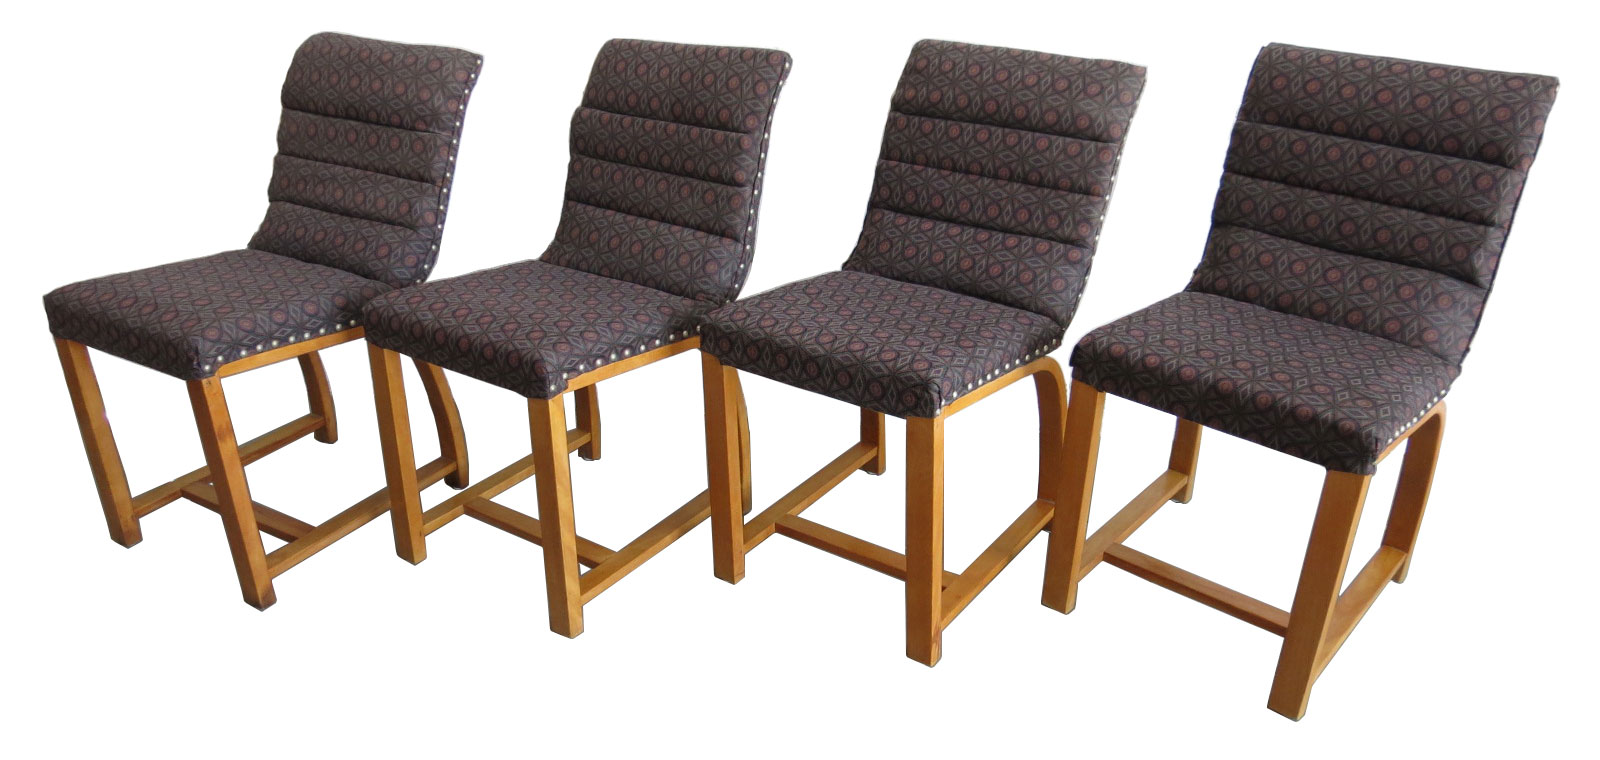 Four American Art Deco Chairs By Gilbert Rohde